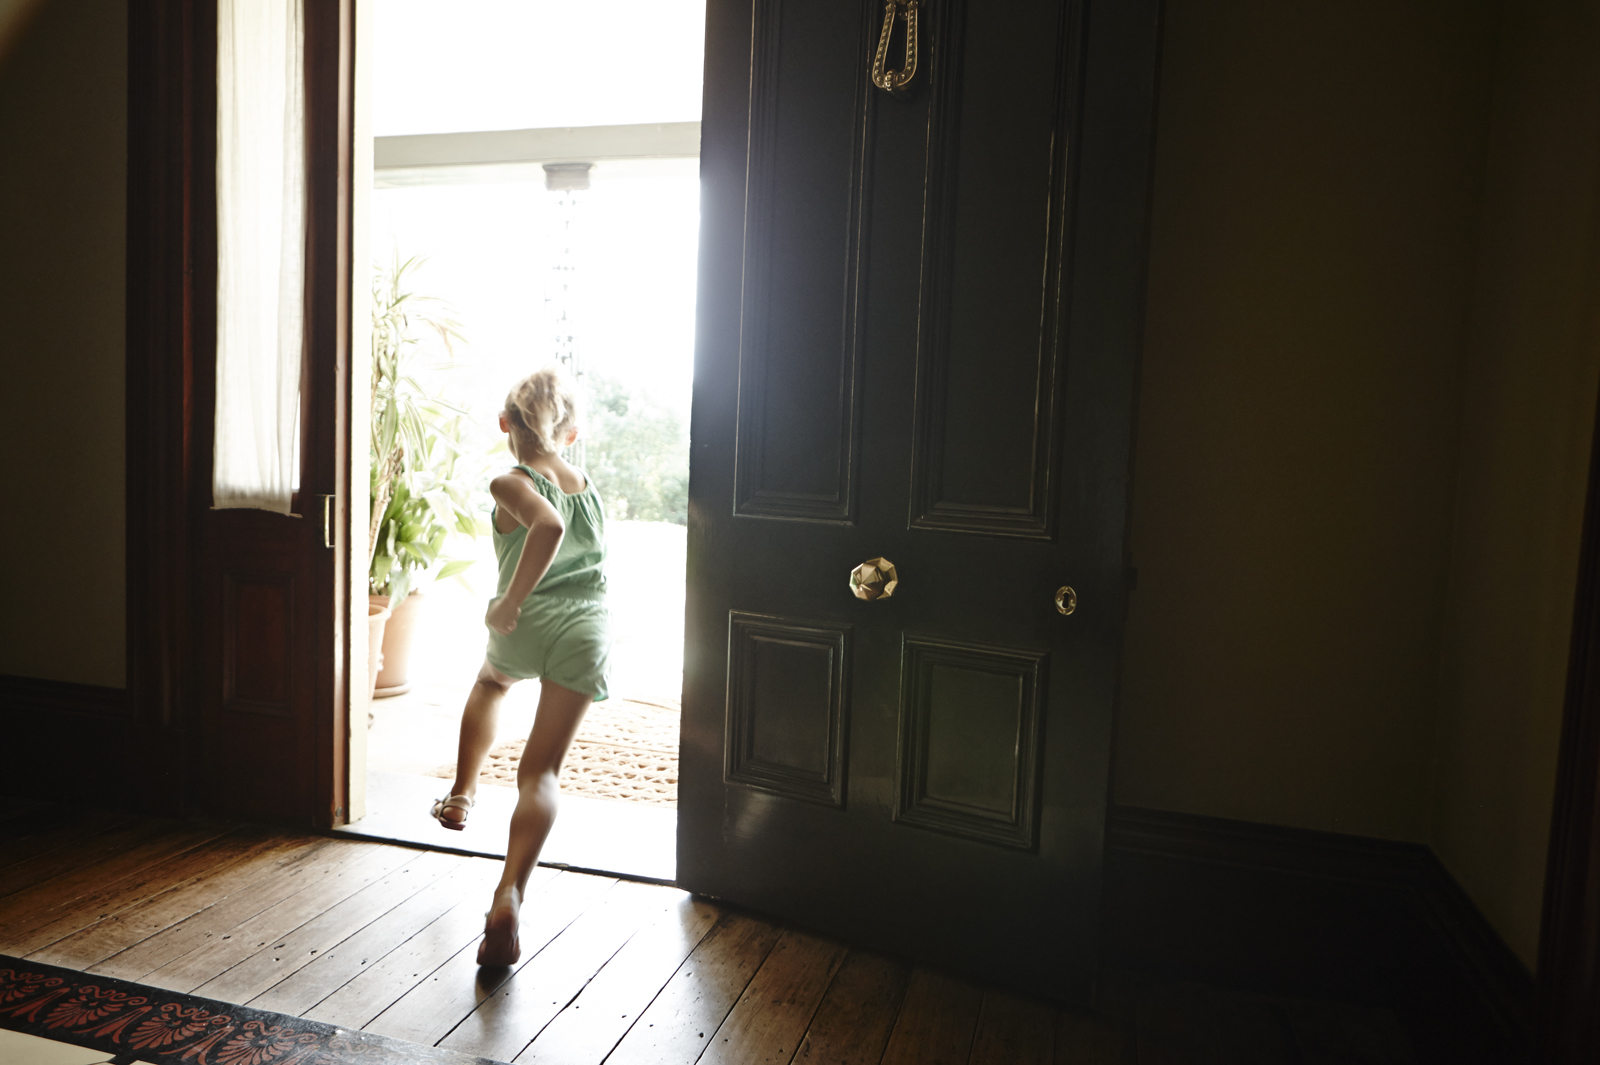 Girl running out of doorway into bright sunlight from dark room.